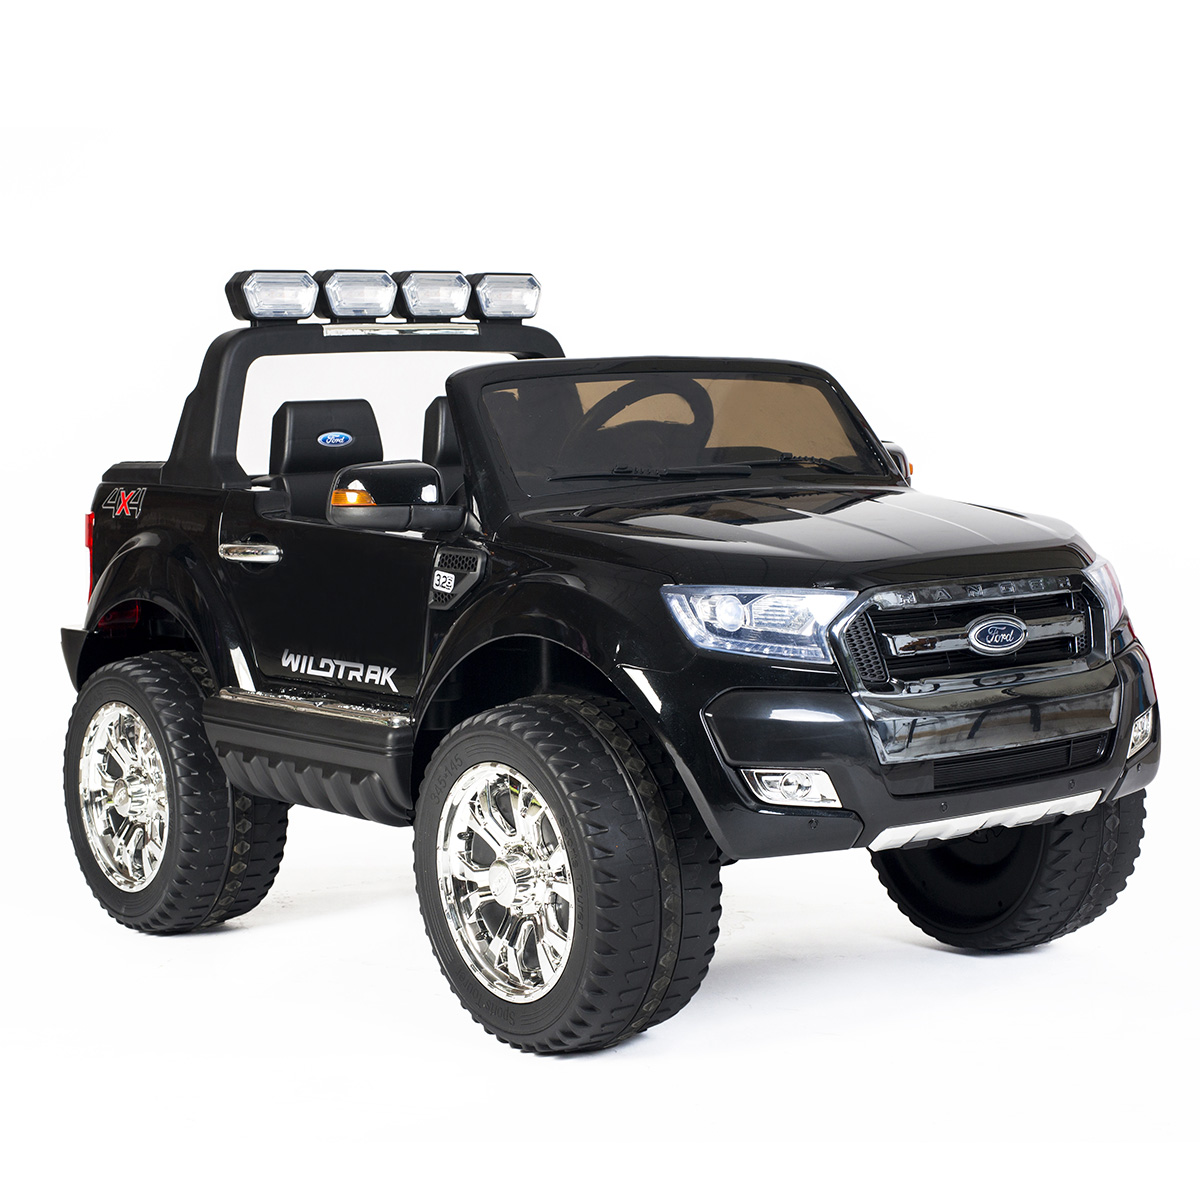 Ford elbil - Ranger F650 - Sort